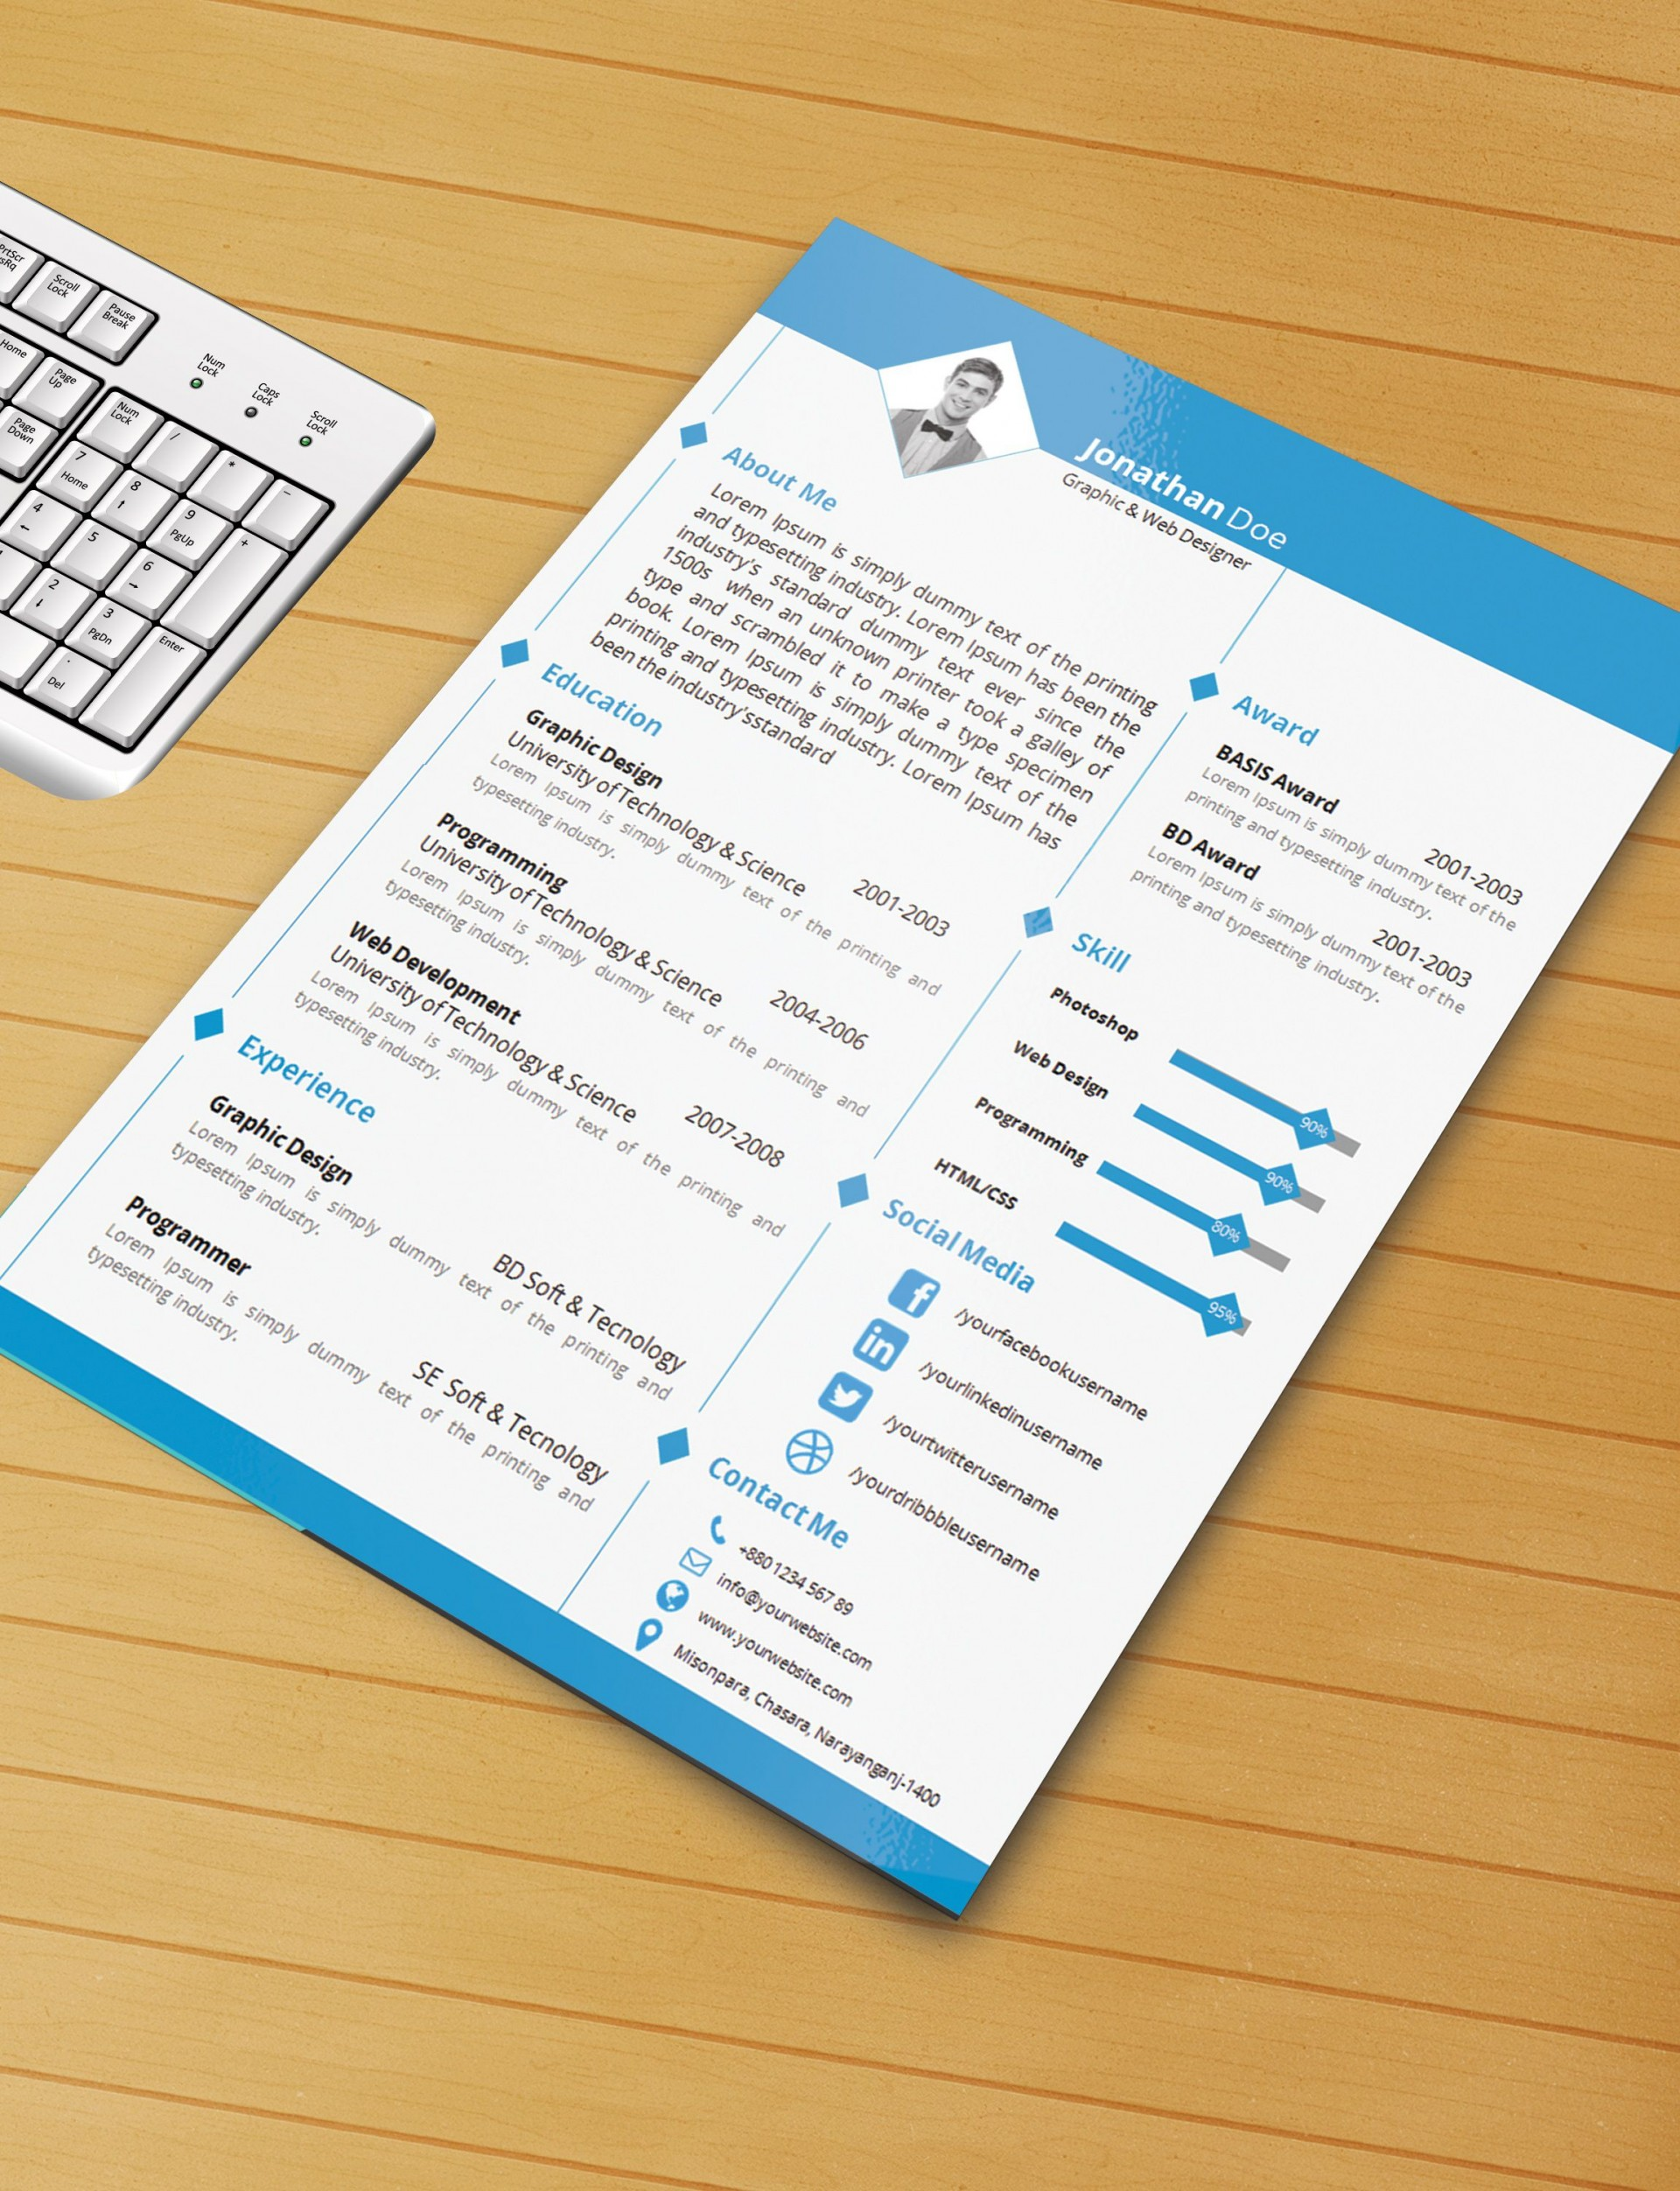 002 Frightening Microsoft Office Free Template Sample  Excel Download M Powerpoint1920